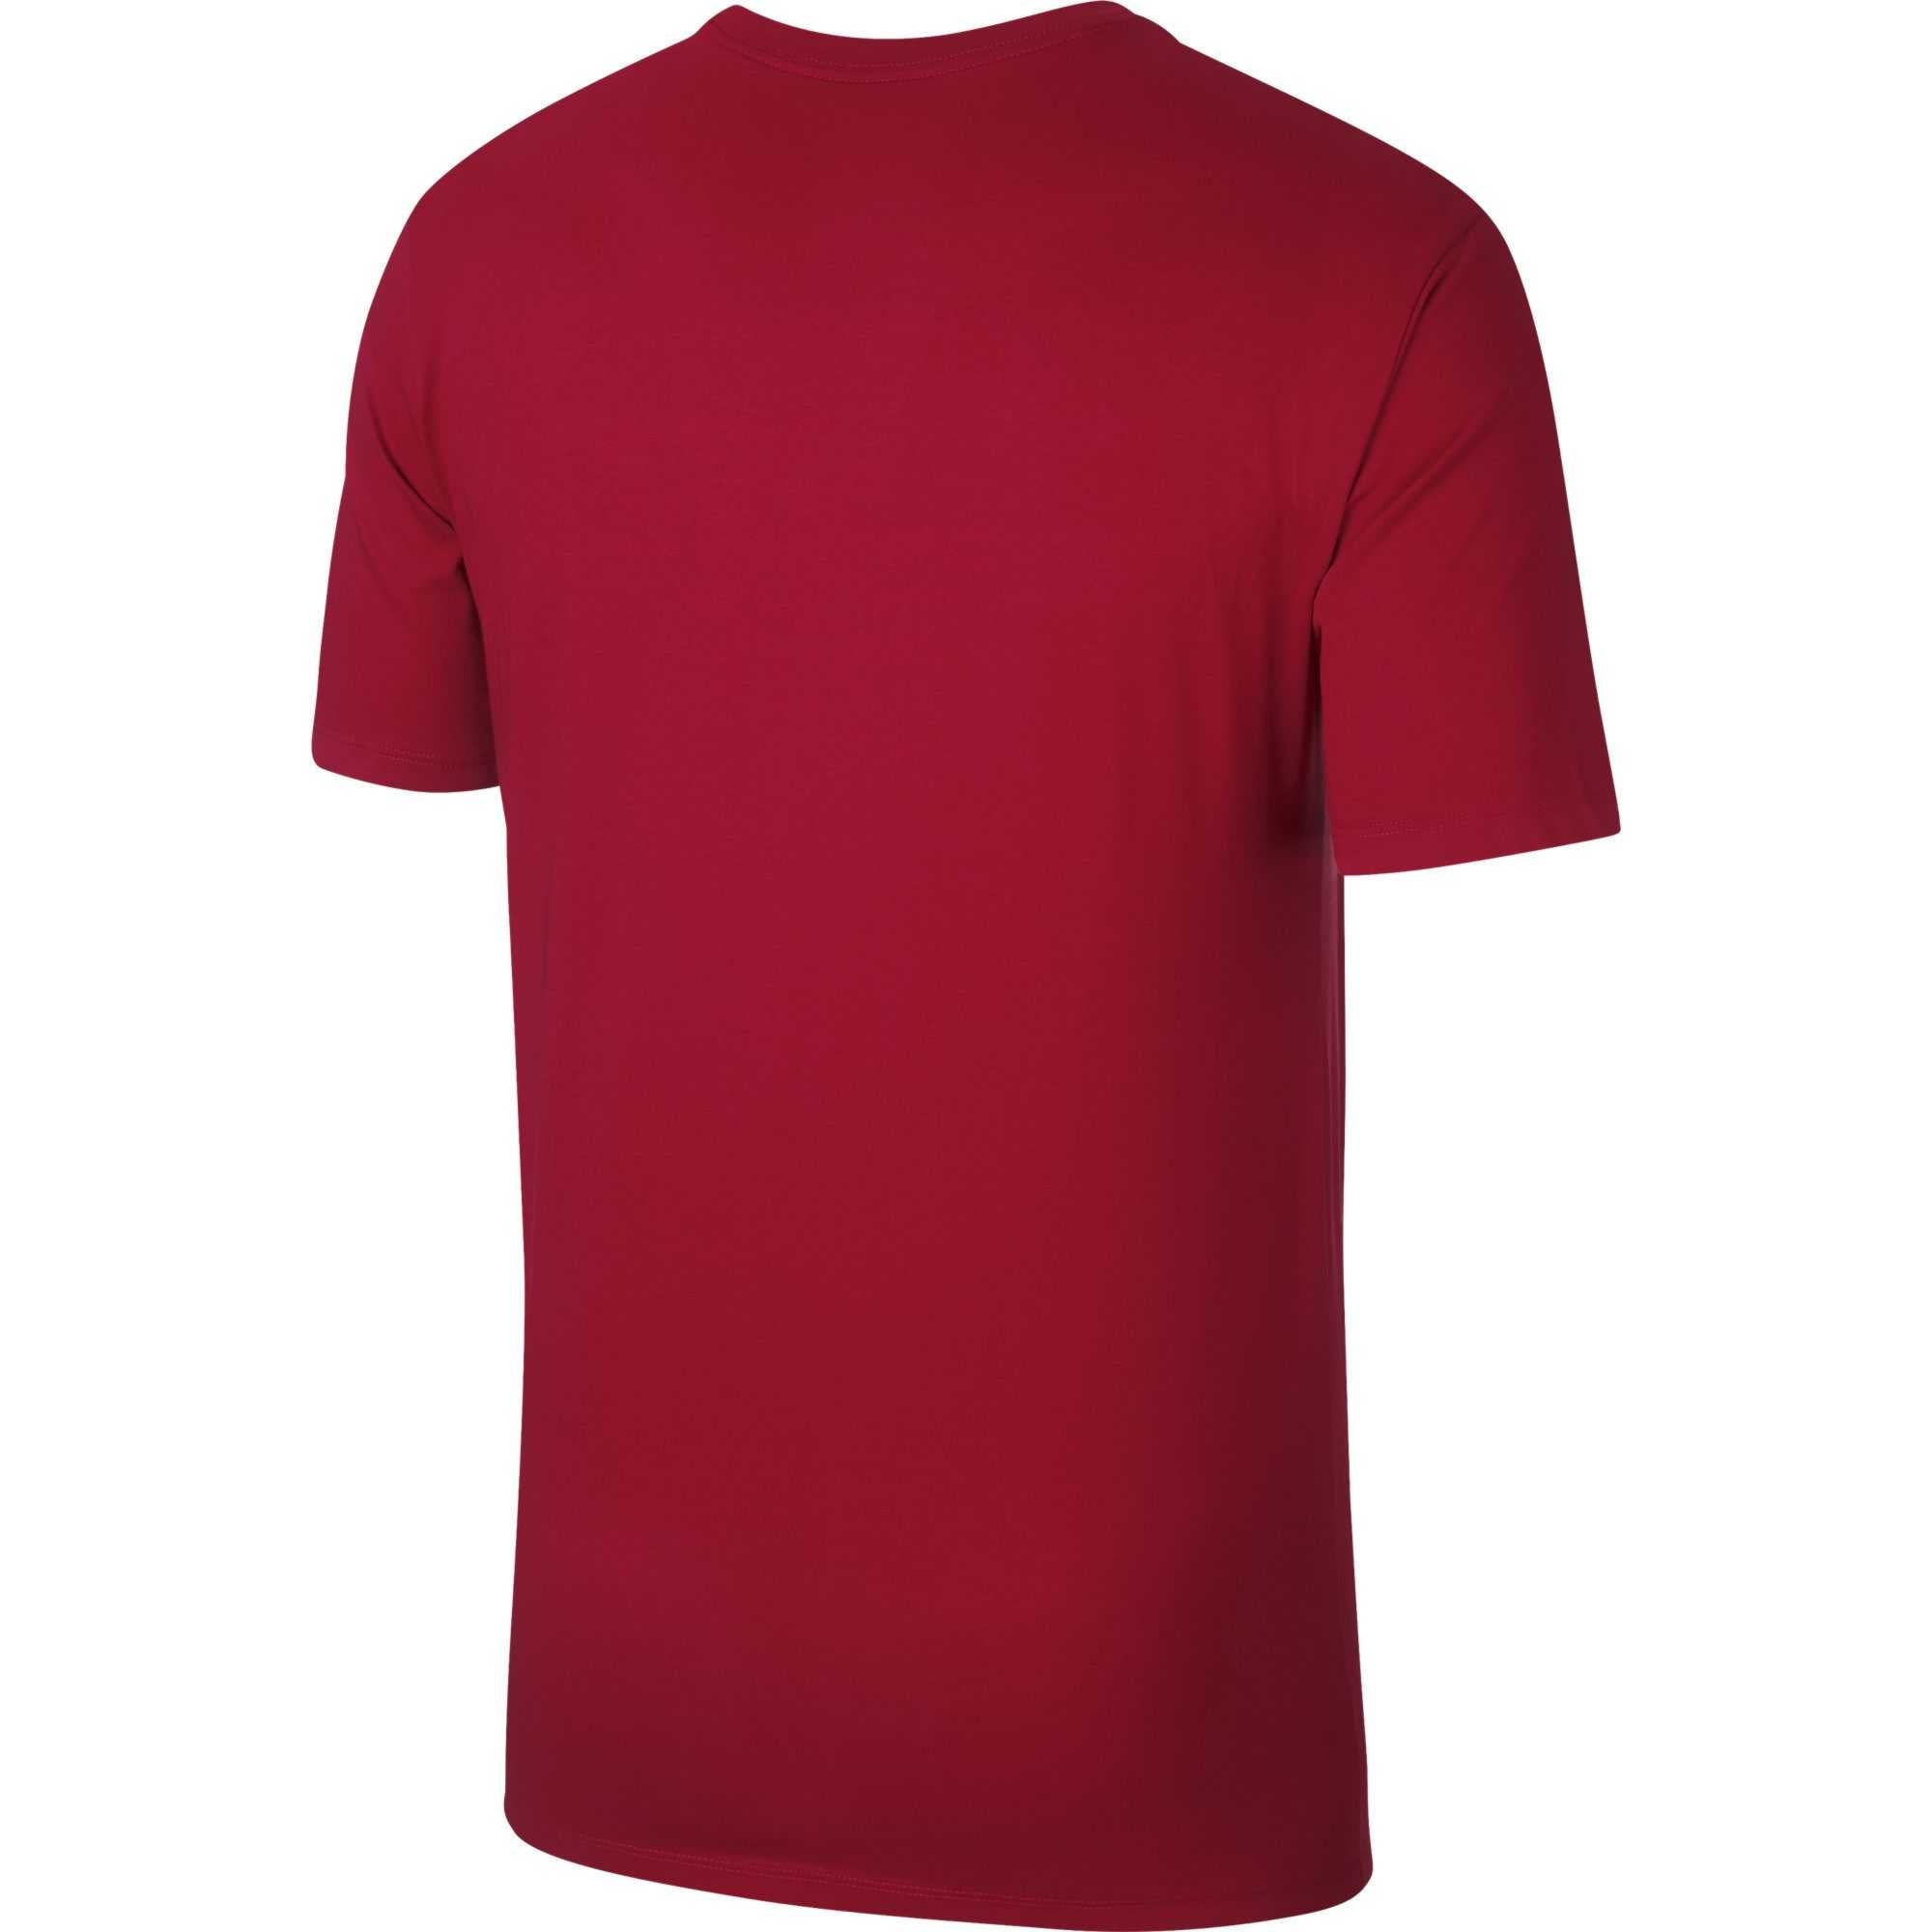 Nike Jordan Rise Verbiage Basketball Tee - Gym Red/White